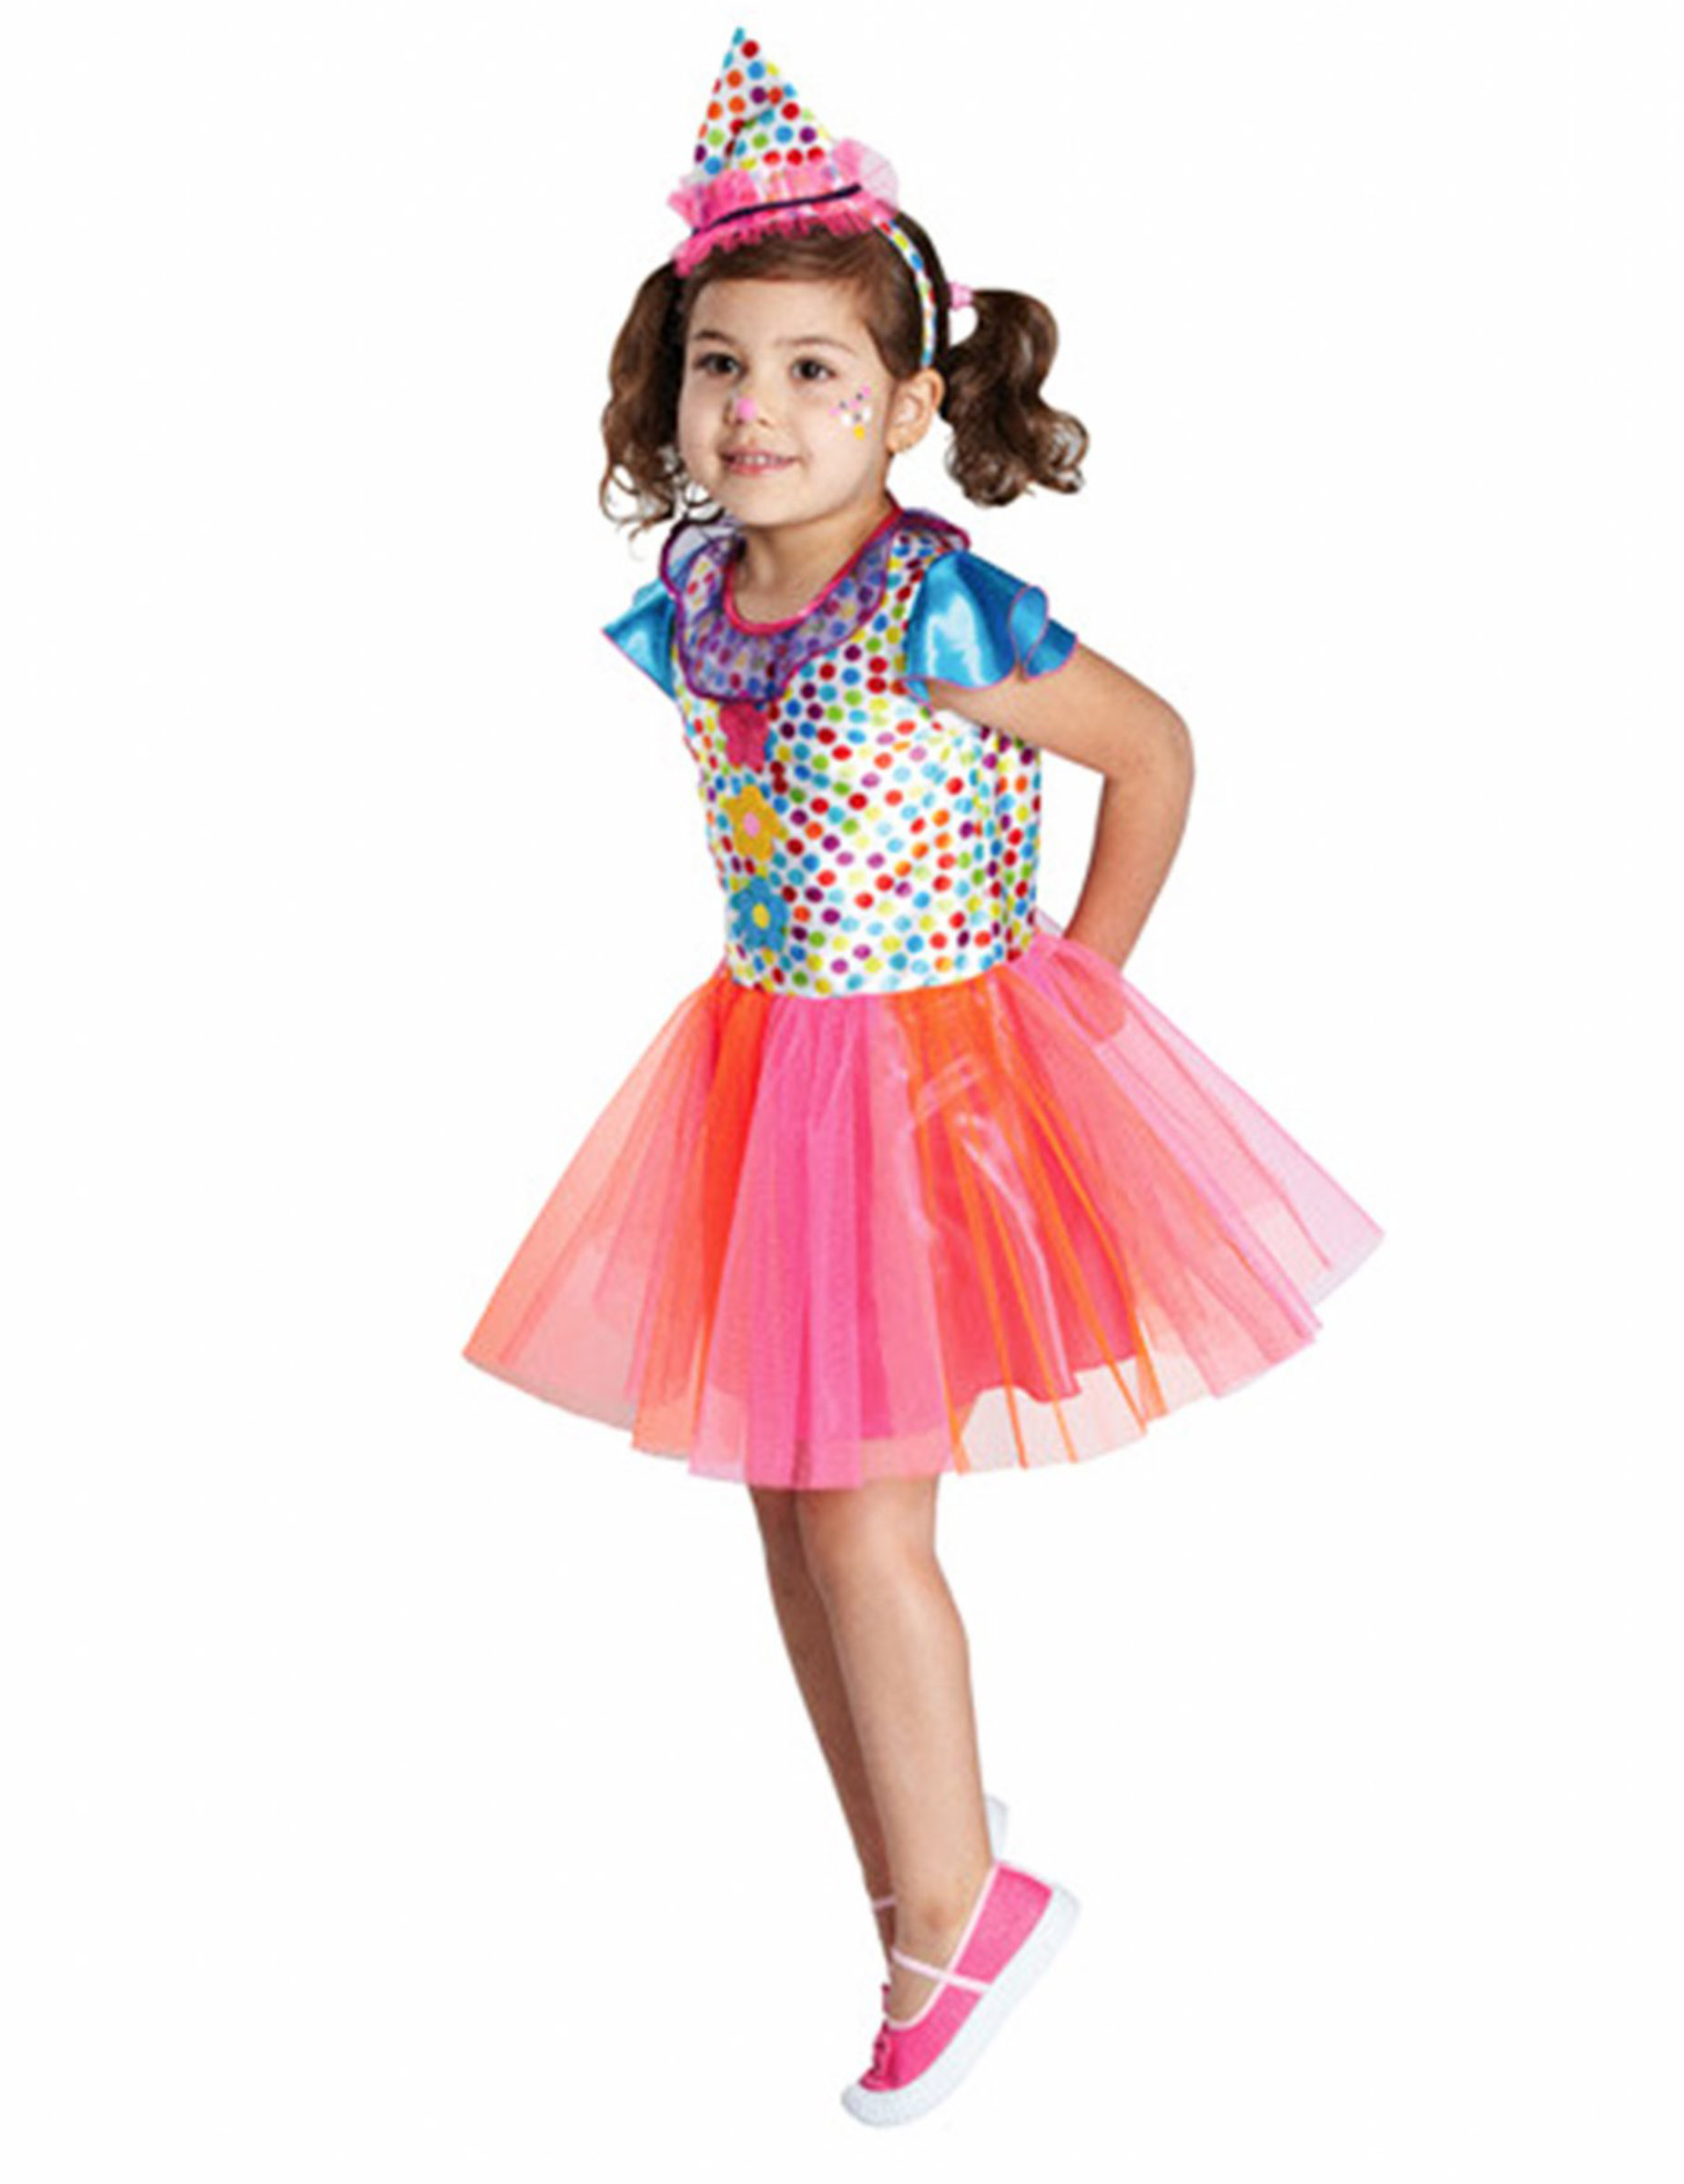 Clown Madchen Kinderkostum Pink Orange Blau Gunstige Faschings